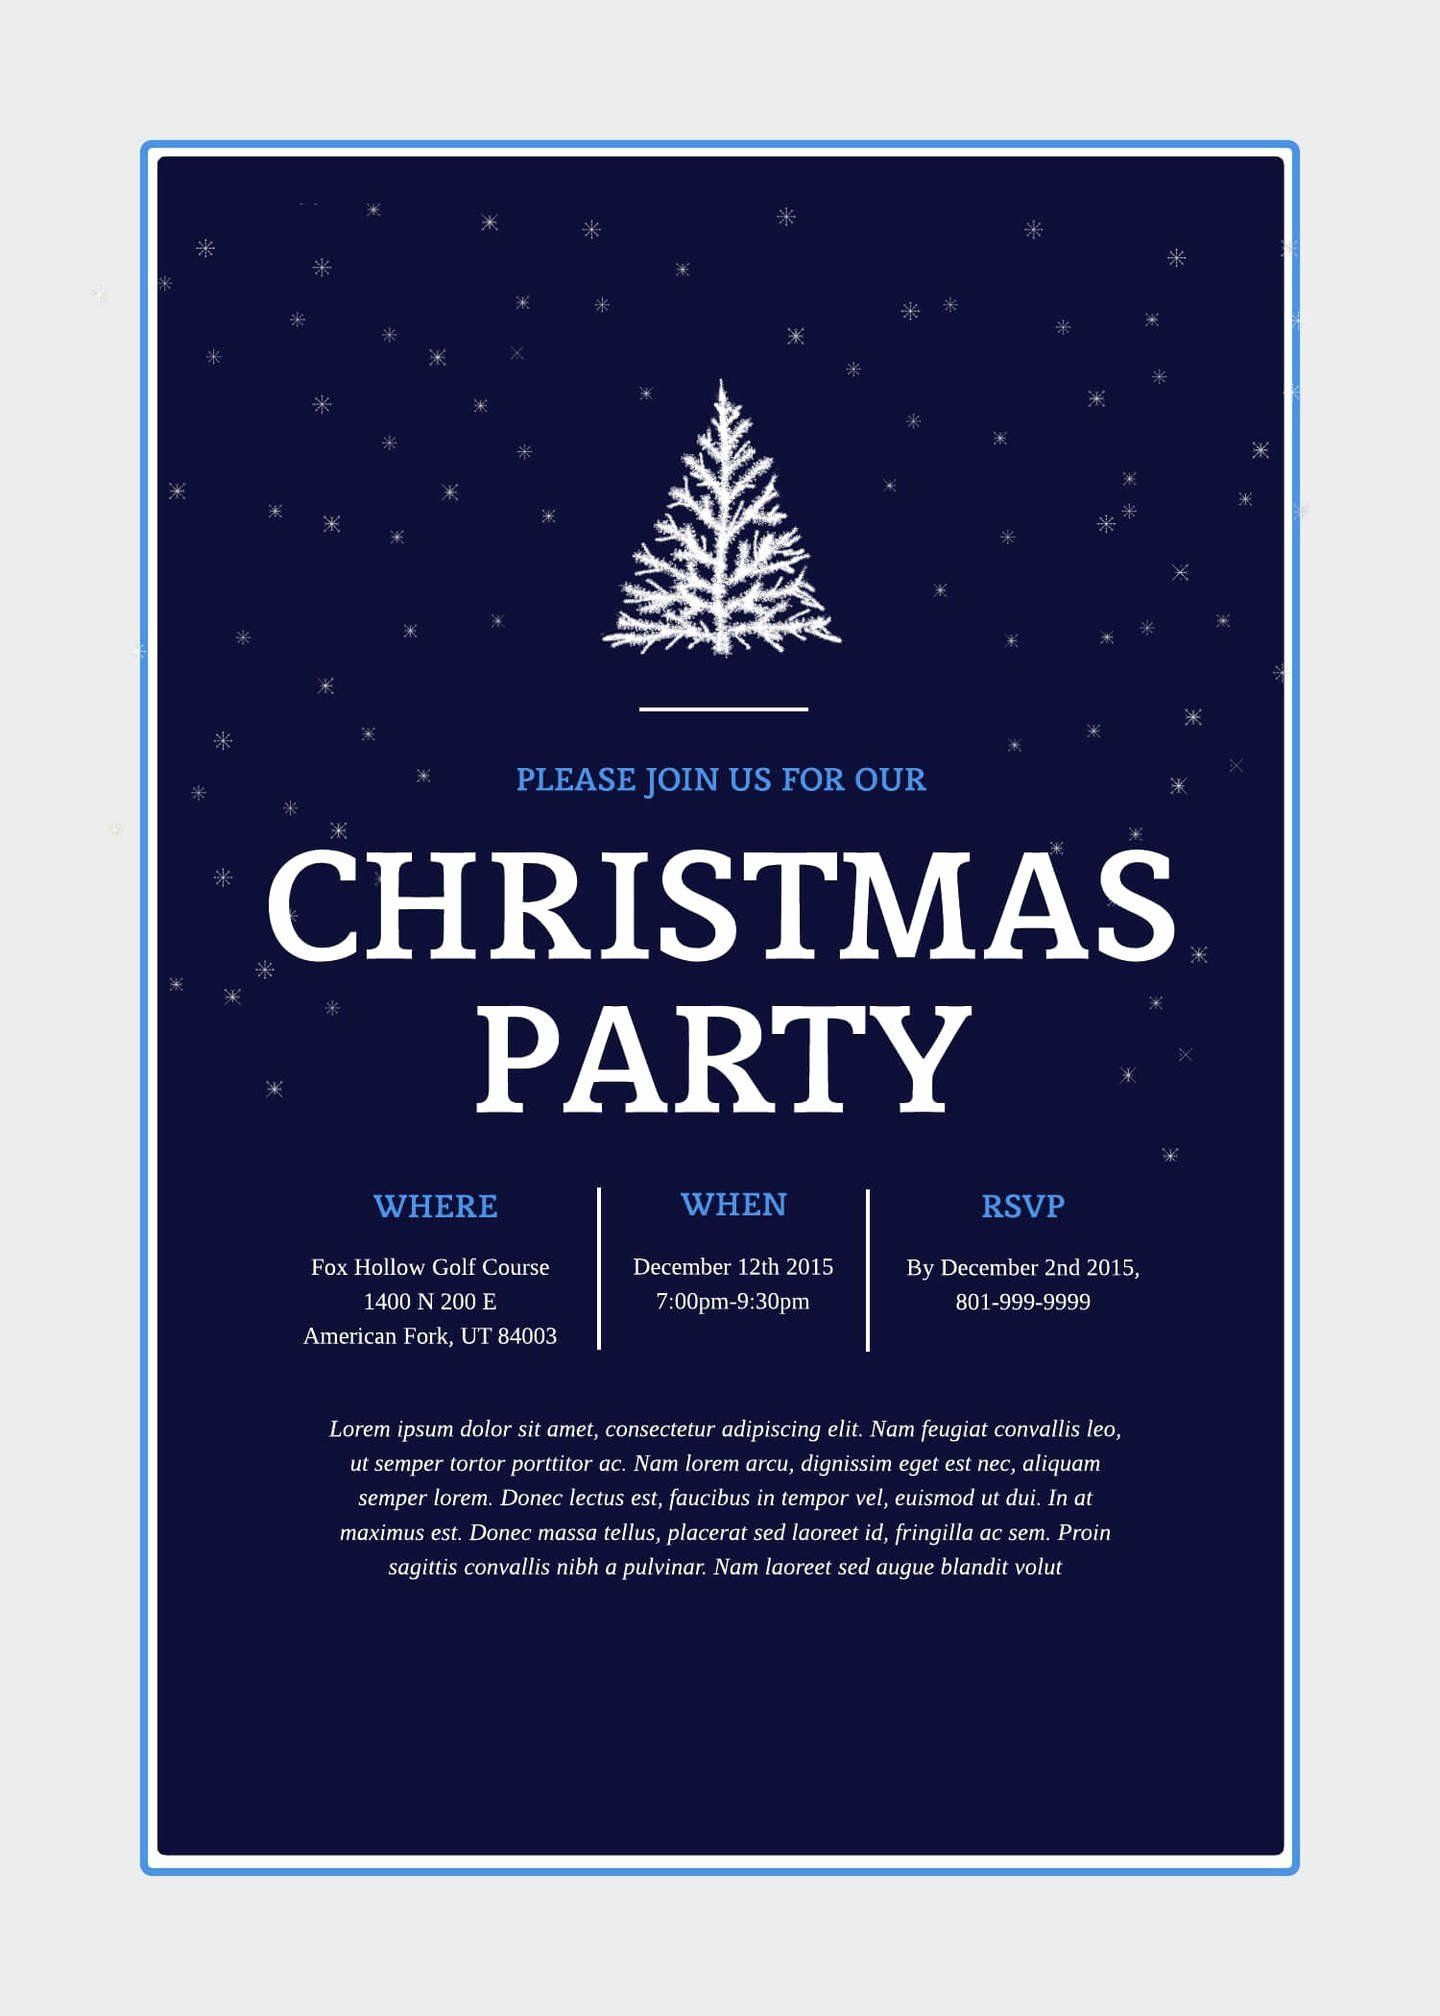 002 Archaicawful Free Email Holiday Party Invitation Template Highest Quality  Templates ChristmaFull